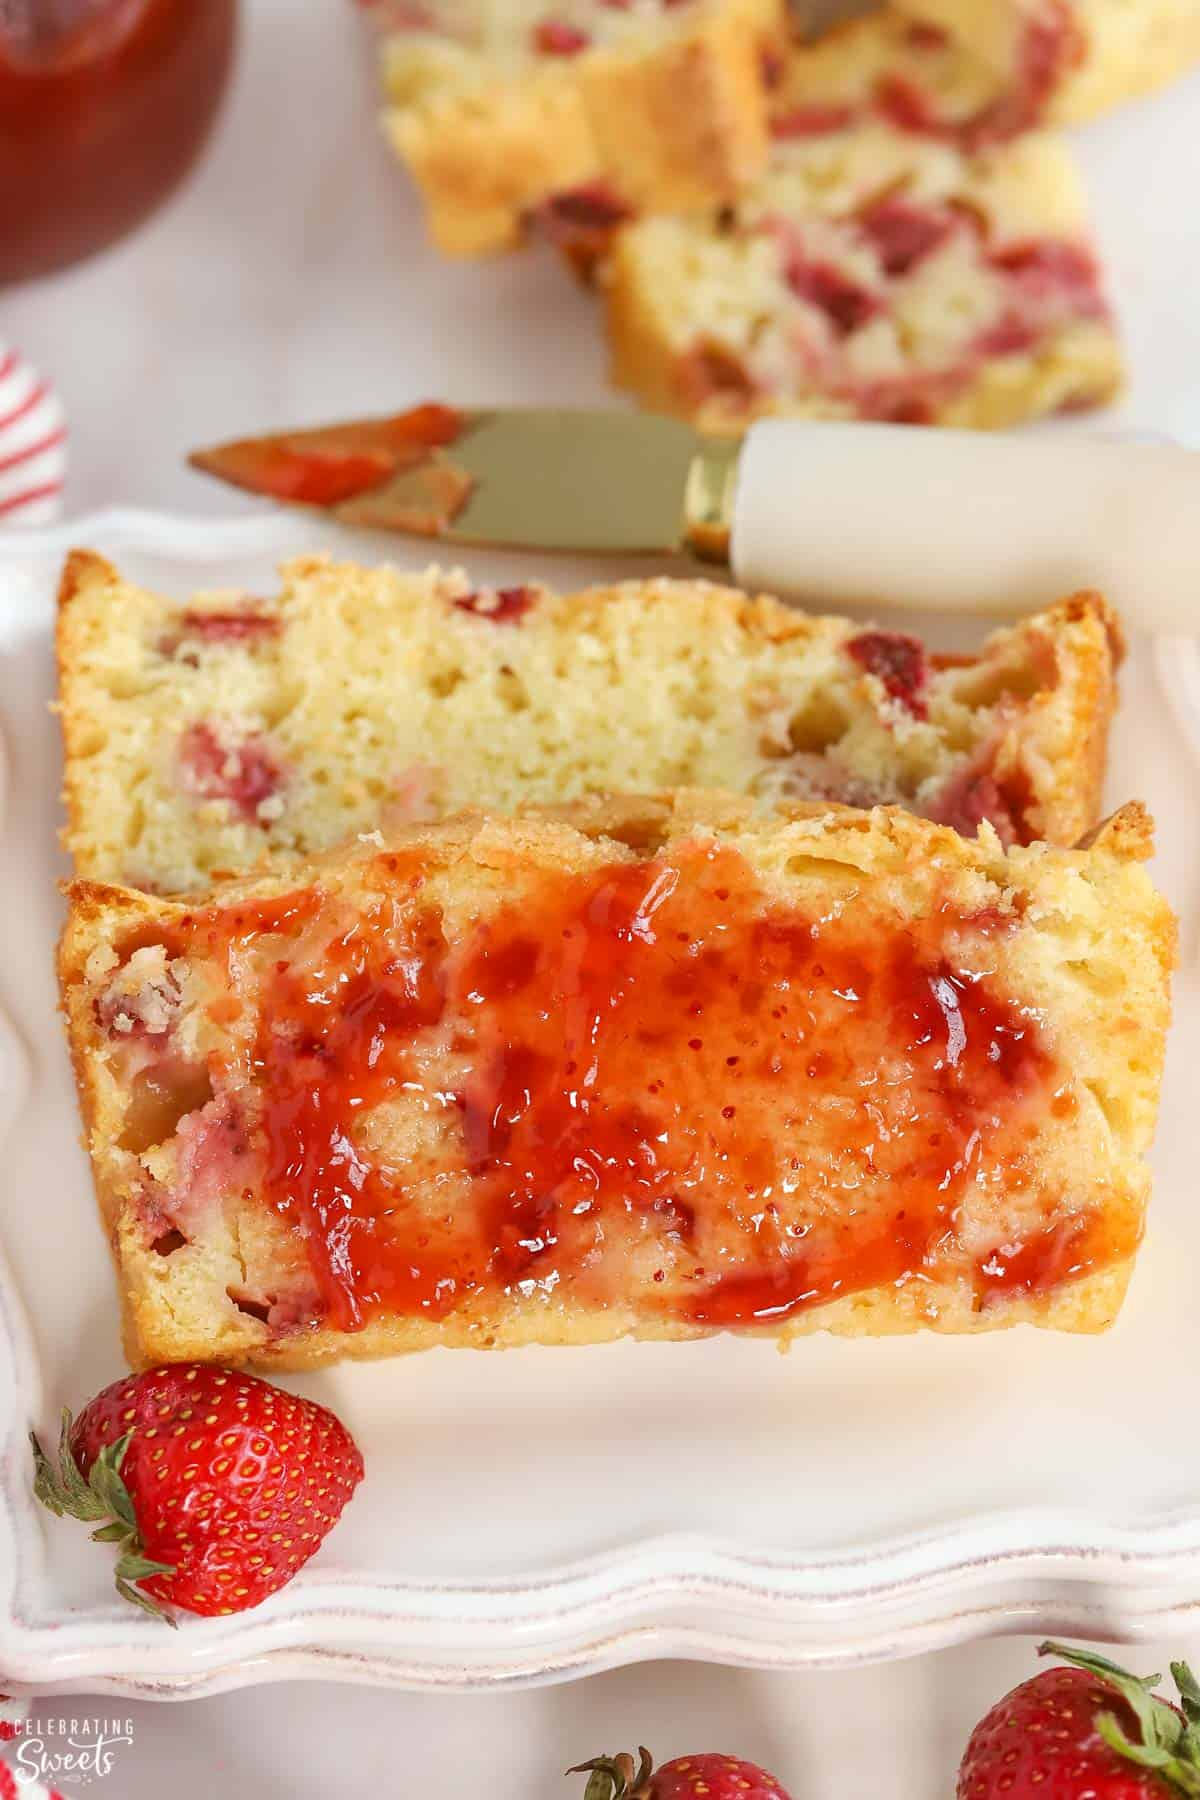 Two slices of strawberry bread on a white plate topped with strawberry jam.